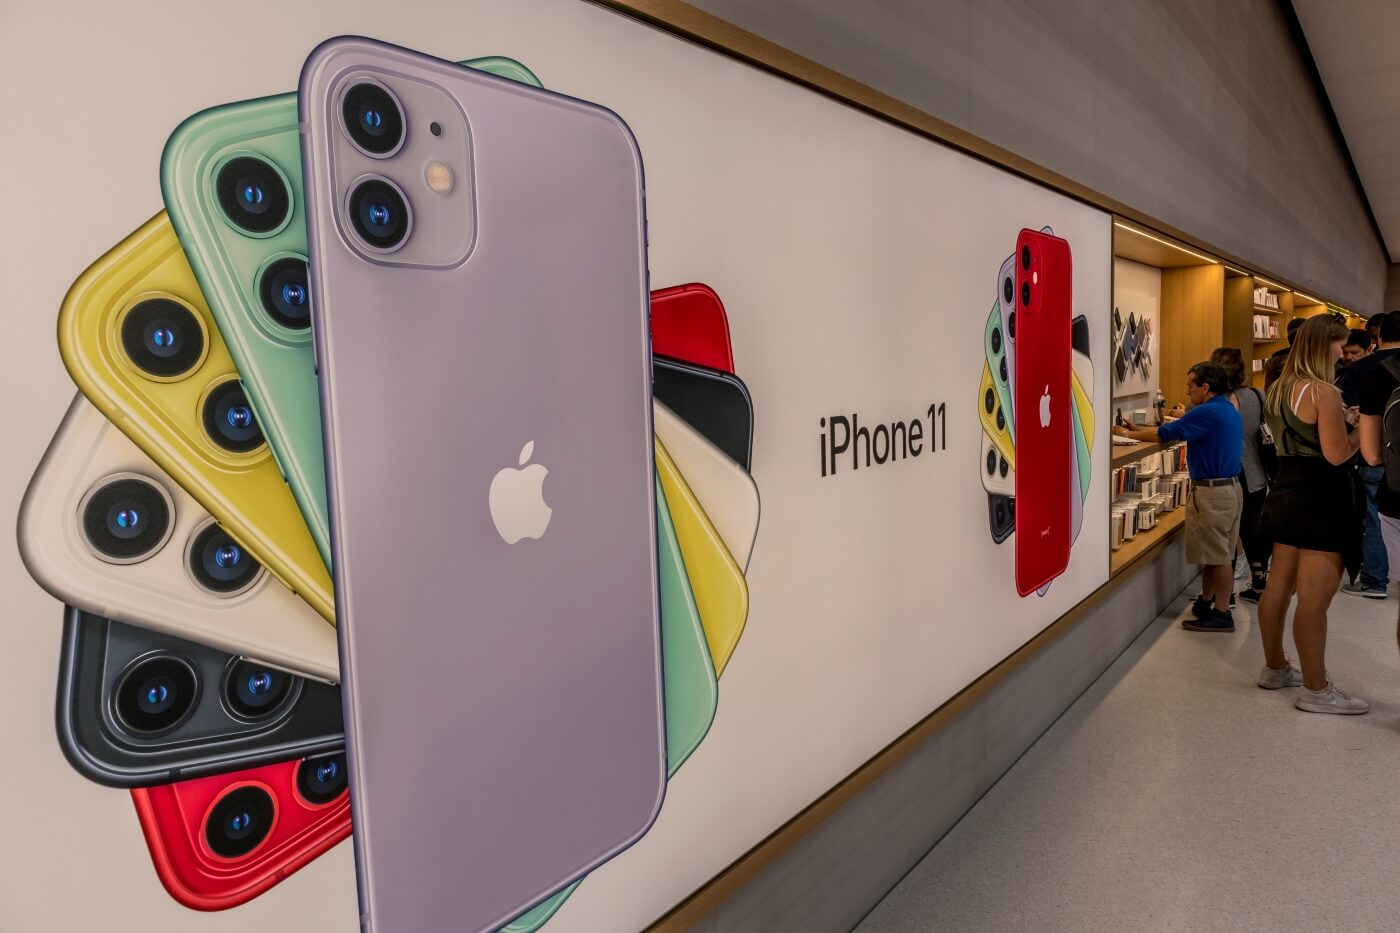 Apple turns in record-setting quarterly report fueled by strong iPhone 11 sales